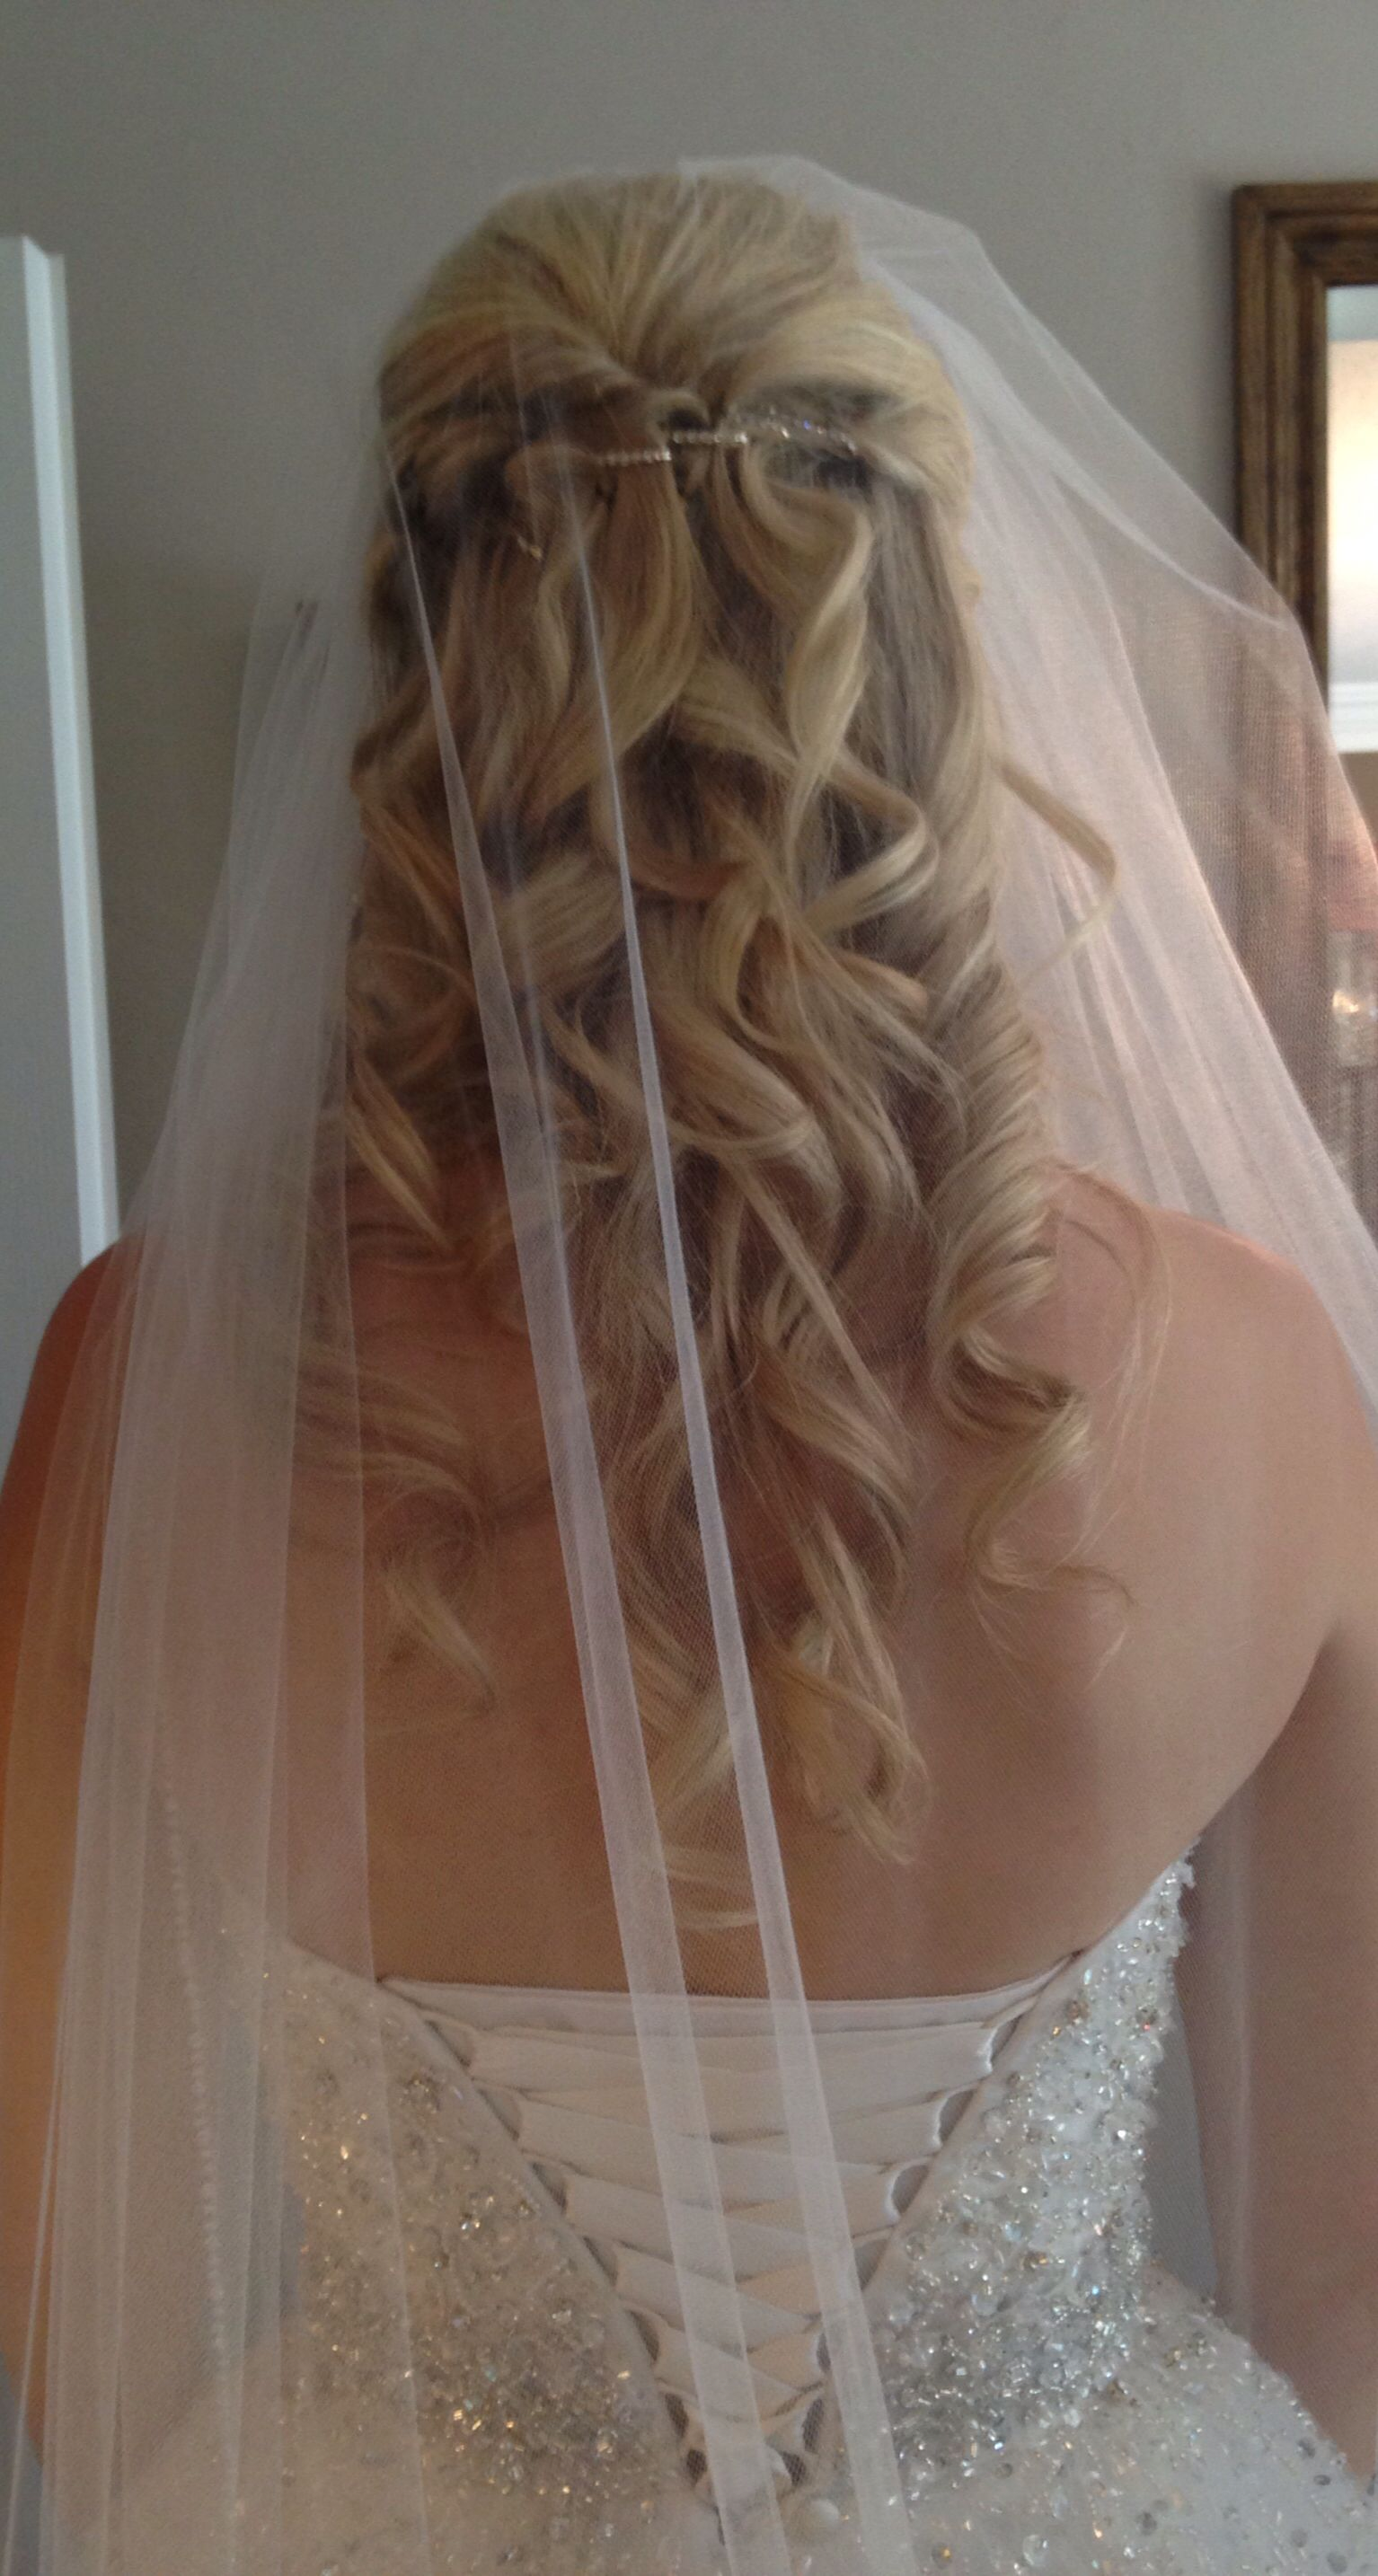 Our beautiful bride in her jessica simpson inspired wedding